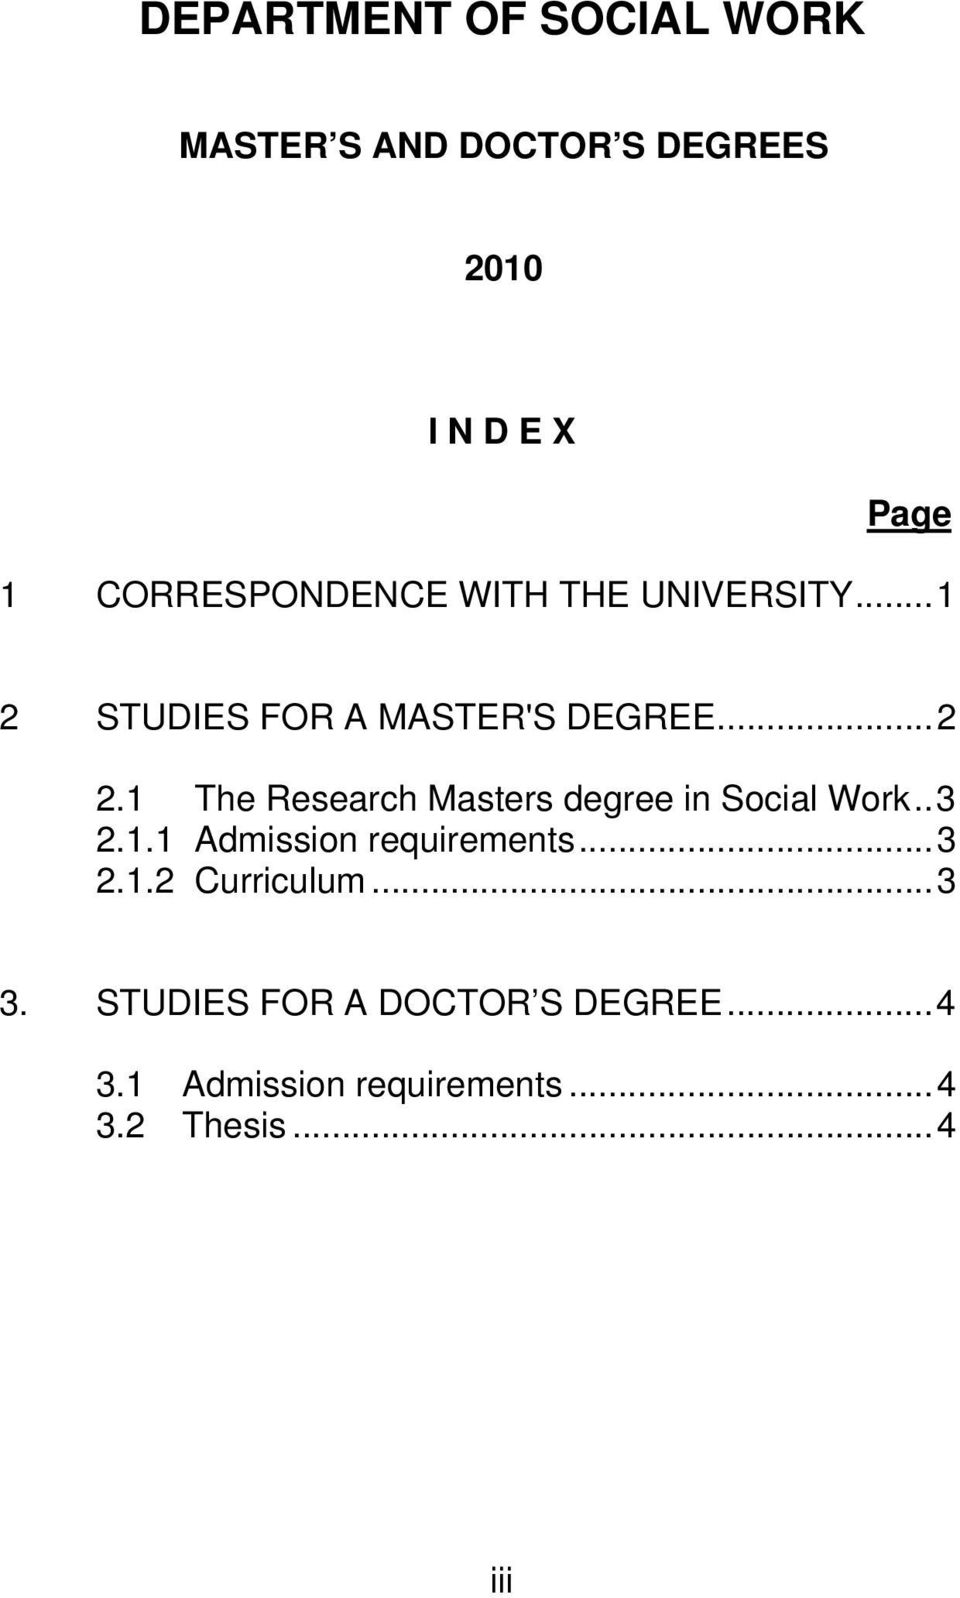 1 The Research Masters degree in Social Work.. 3 2.1.1 Admission requirements... 3 2.1.2 Curriculum.